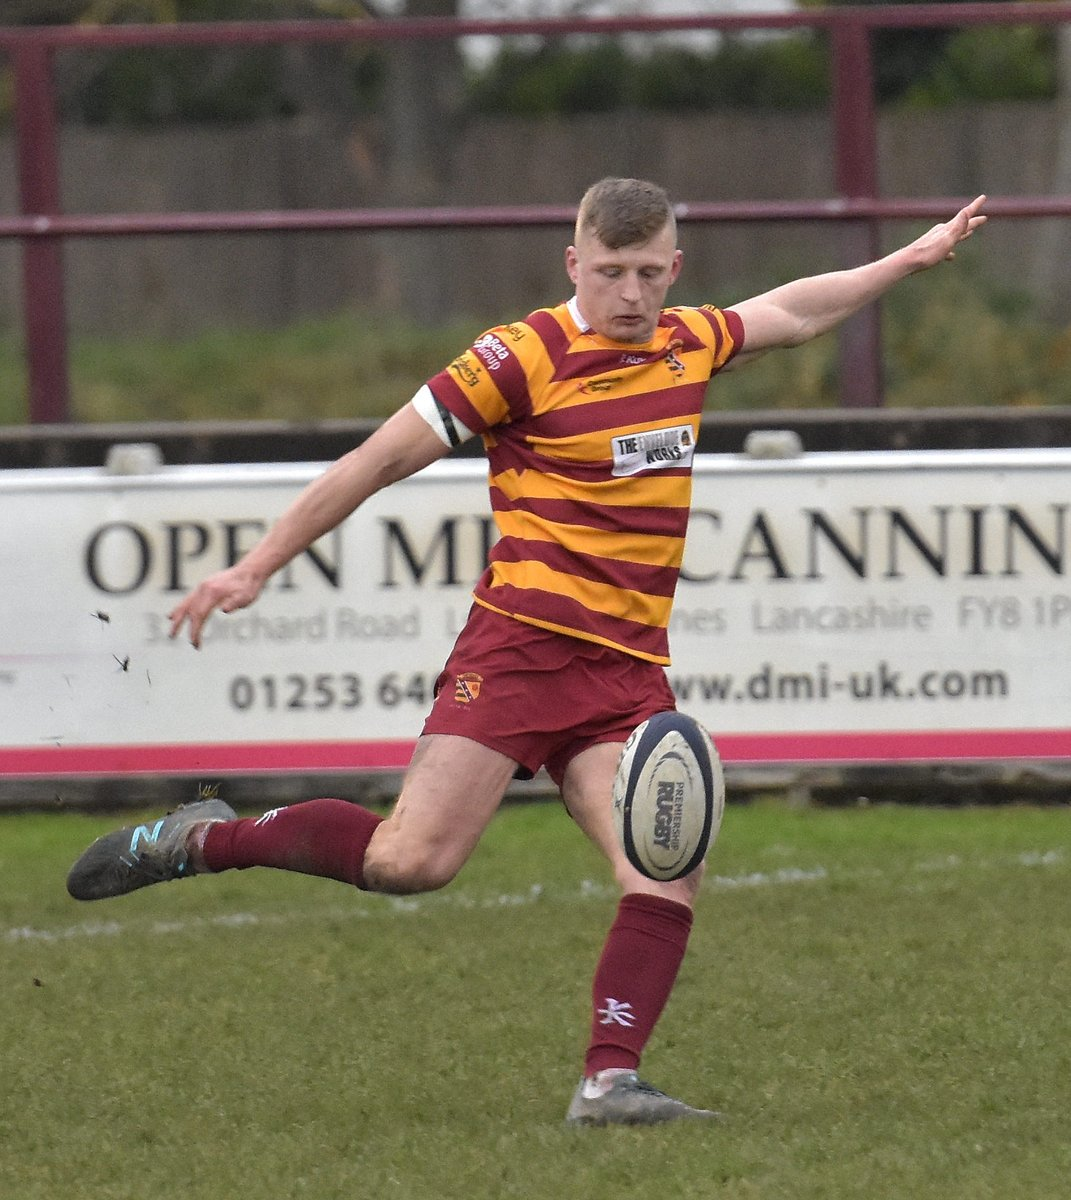 """Today's re-signed #Fylde player is winger @tomgrimes6. 69 appearances in 2½ seasons. 14 tries in 19-20, =7th ranked in #N2N. @spraggio """"Grimesy is a machine. He's hardly missed a game ... a great level of consistency with his performances. Details at https://t.co/zAMmvIFAWa https://t.co/Vz53g9k1zX"""